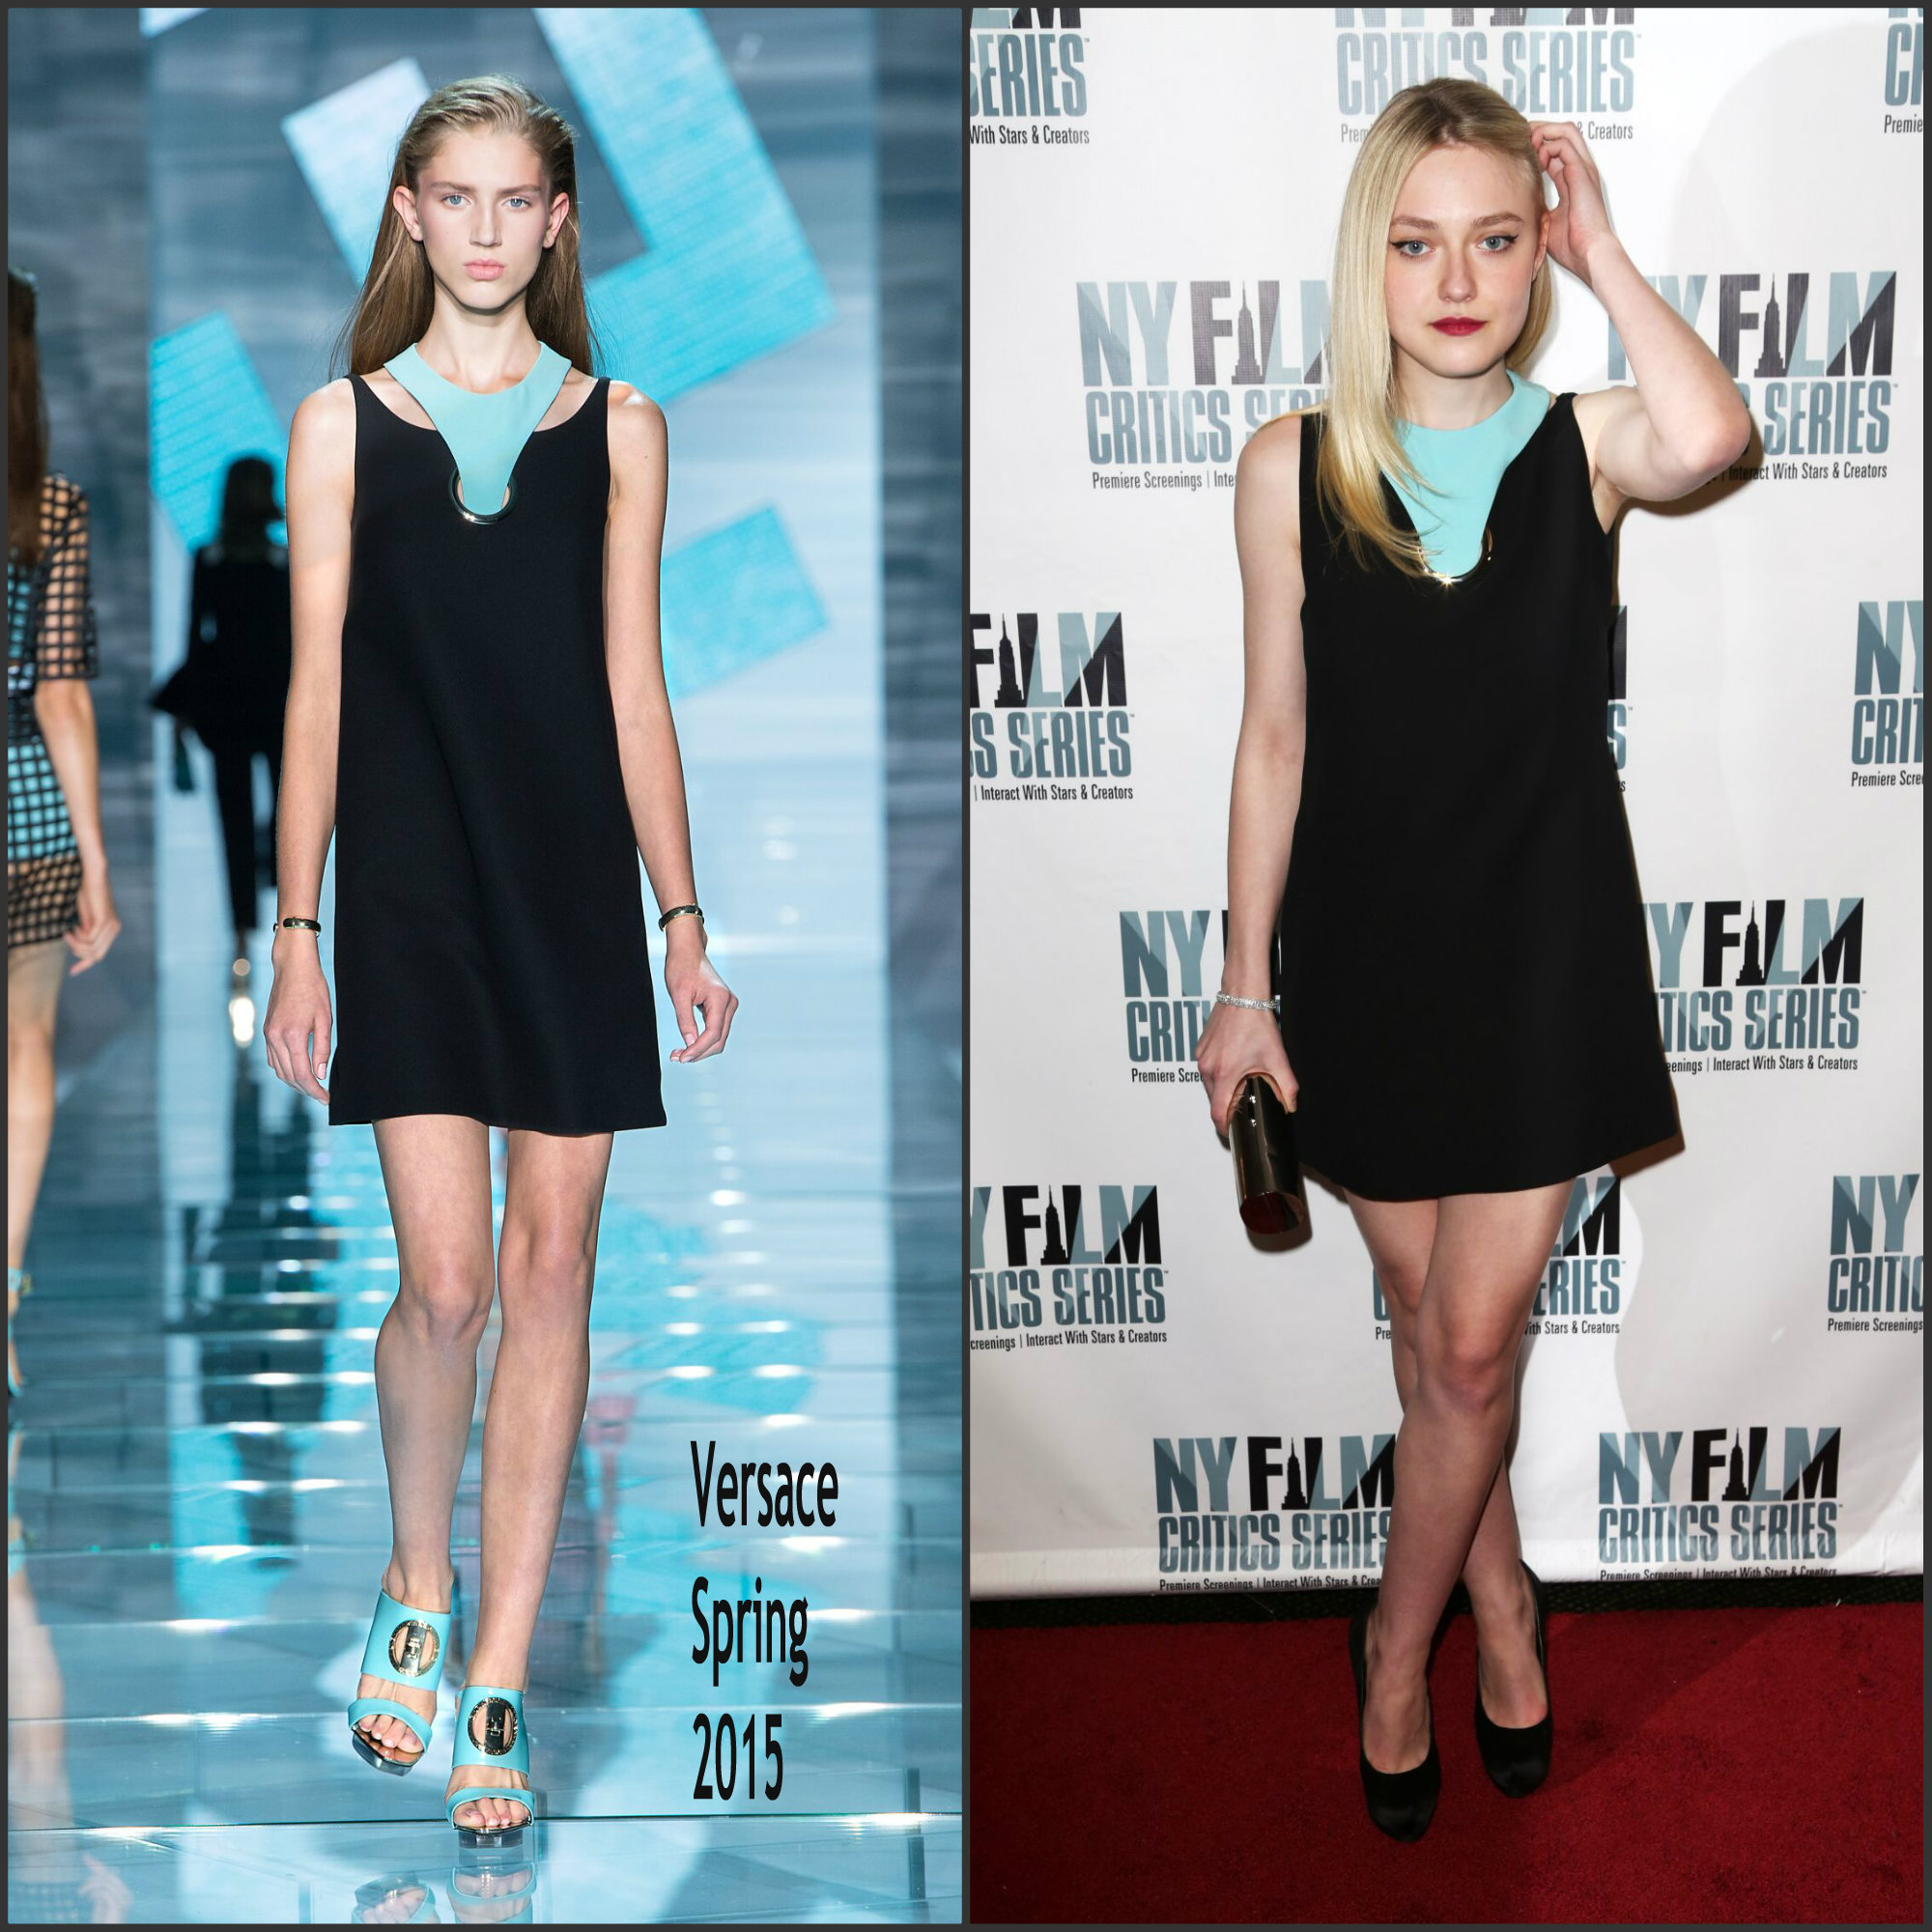 Dakota-Fanning-in-Versace-at-the-Every-Secret-Thing-New-York-Film-Critic-Series-Premiere